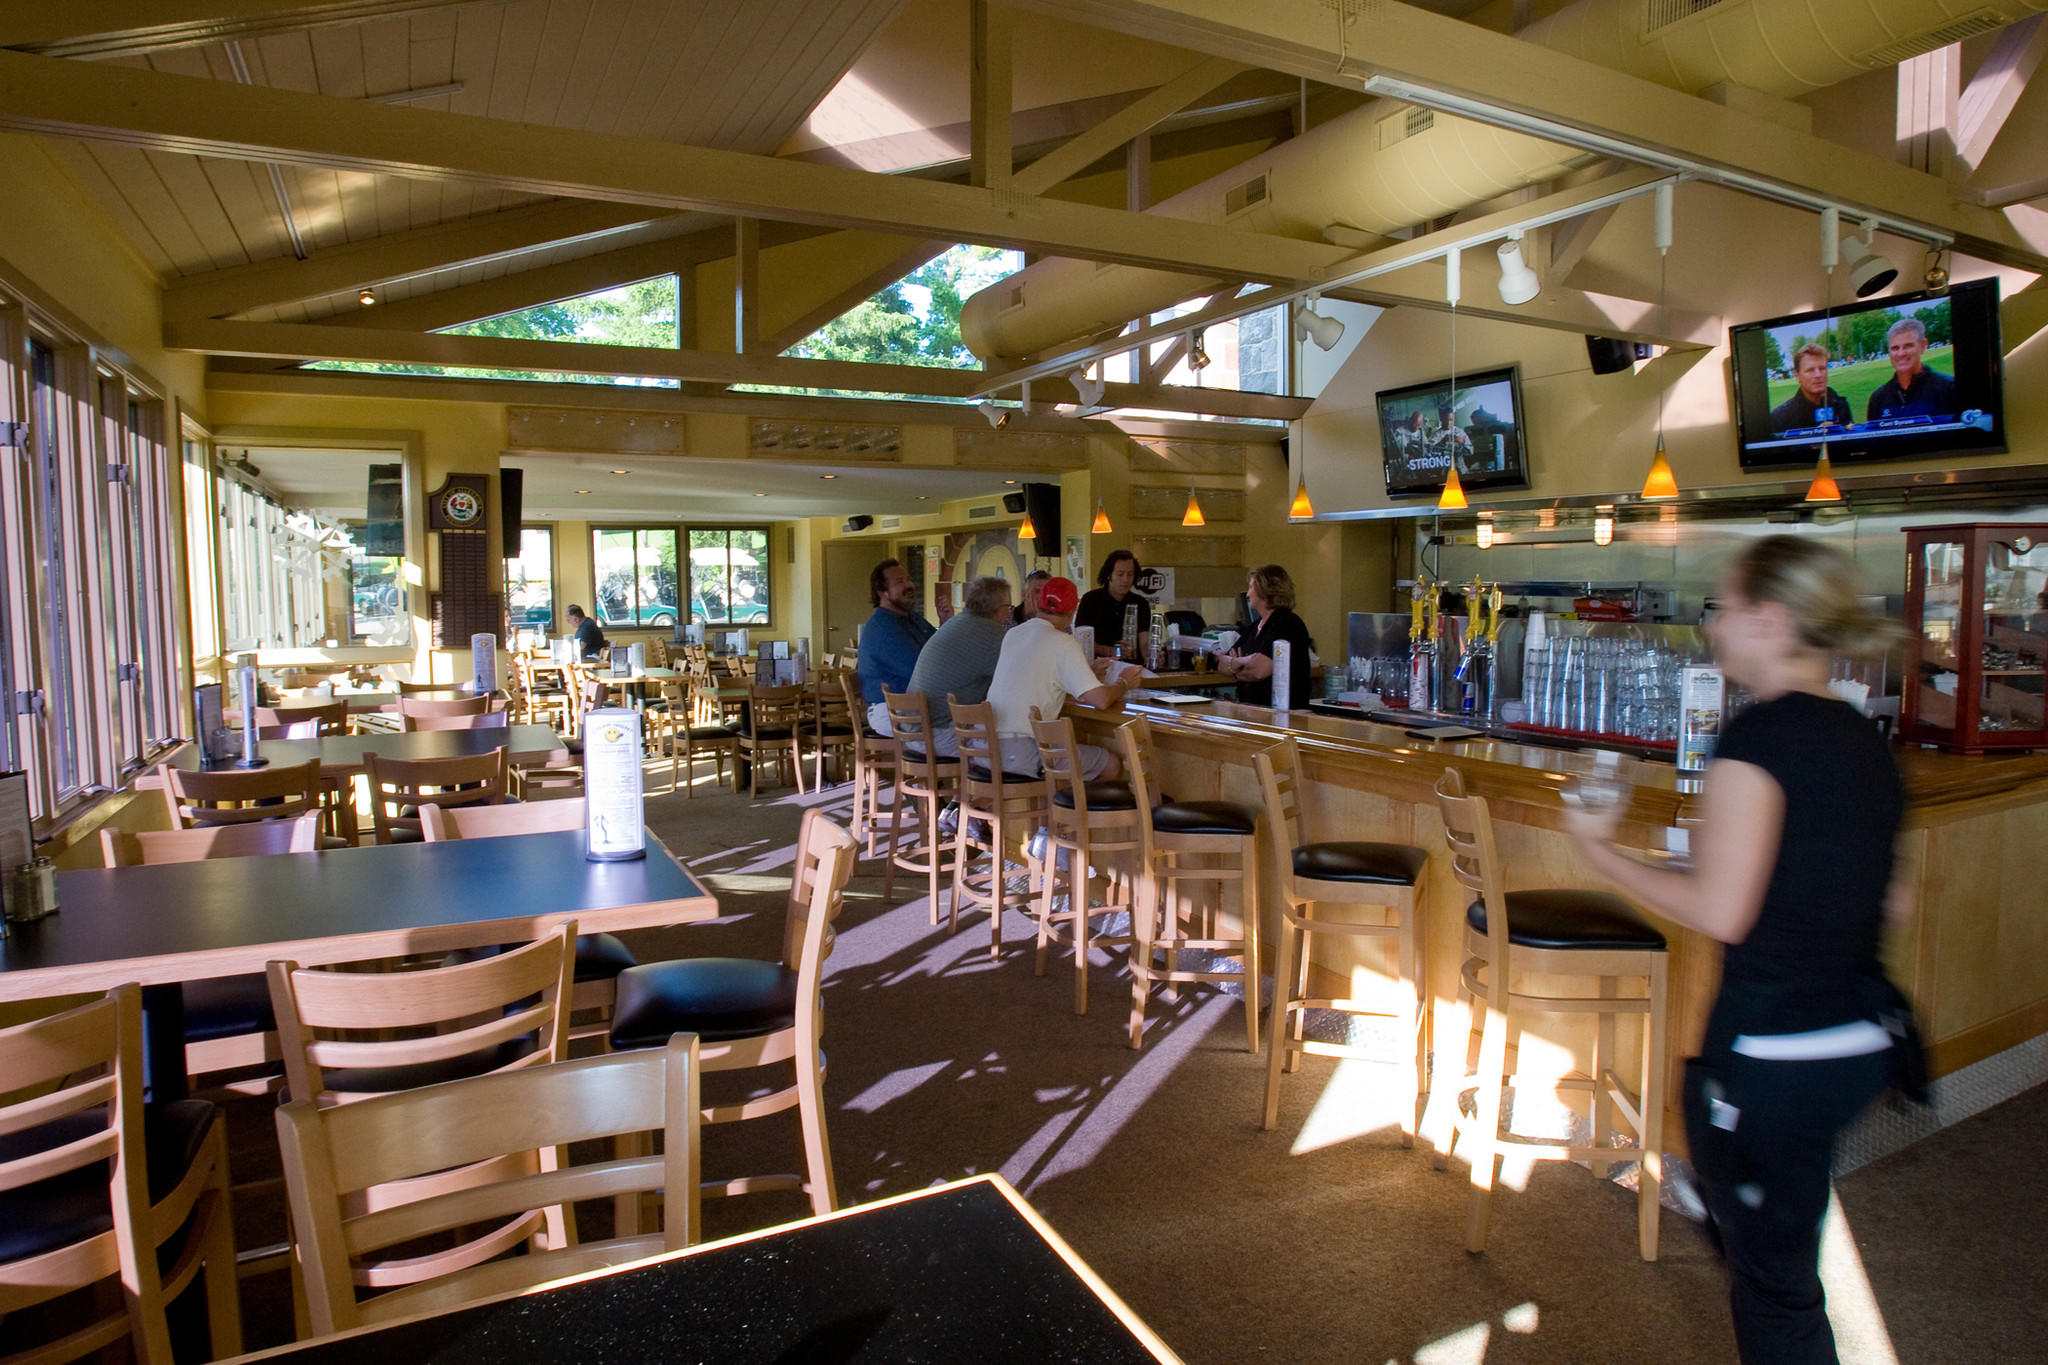 Brew Works on the Green served as the Allentown Municipal Golf Course restaurant for several years until 2013, when the city hired a different operator. That operator's contract recently ended prematurely.